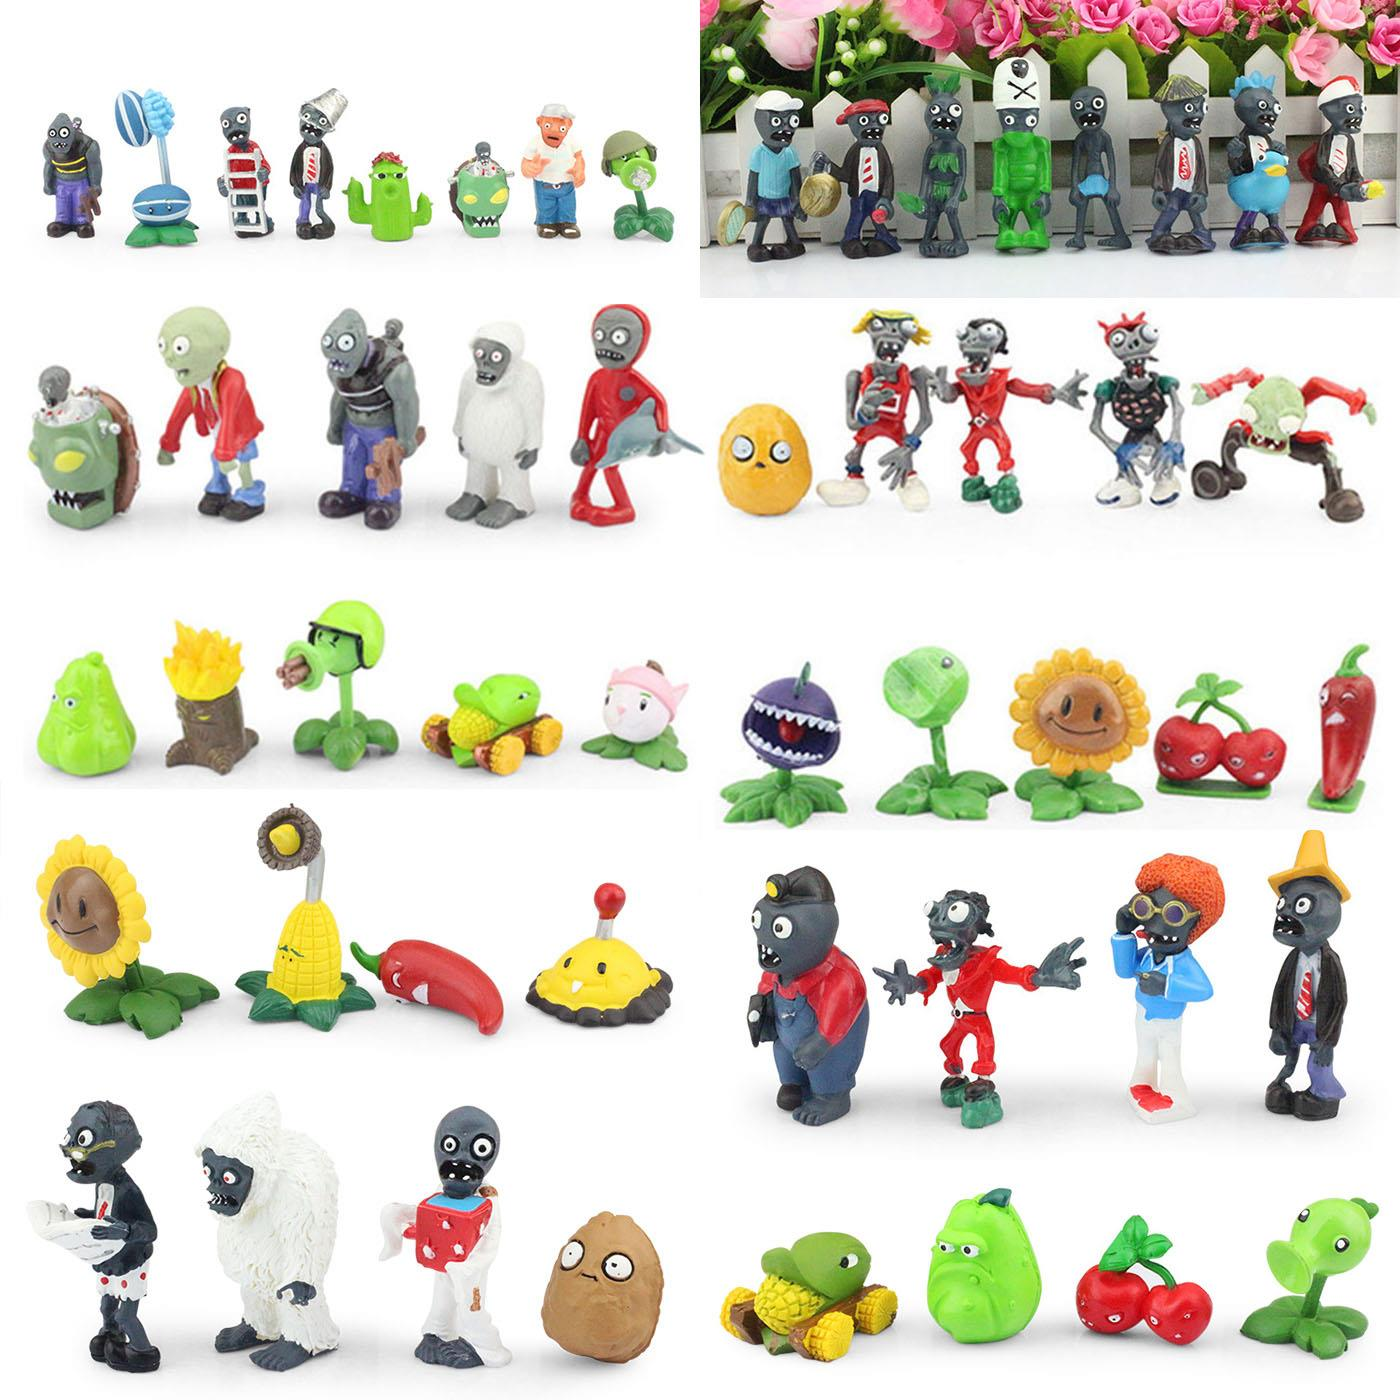 52pcs/set Plants VS Zombies PVZ Collection Figures Toy all the Plants and zombies figure Toys Free Shipping 40pcs set plants vs zombies toys anime pvz pvc action figure 3 8cm collection model figma kids toy for boys girls birthday gifts